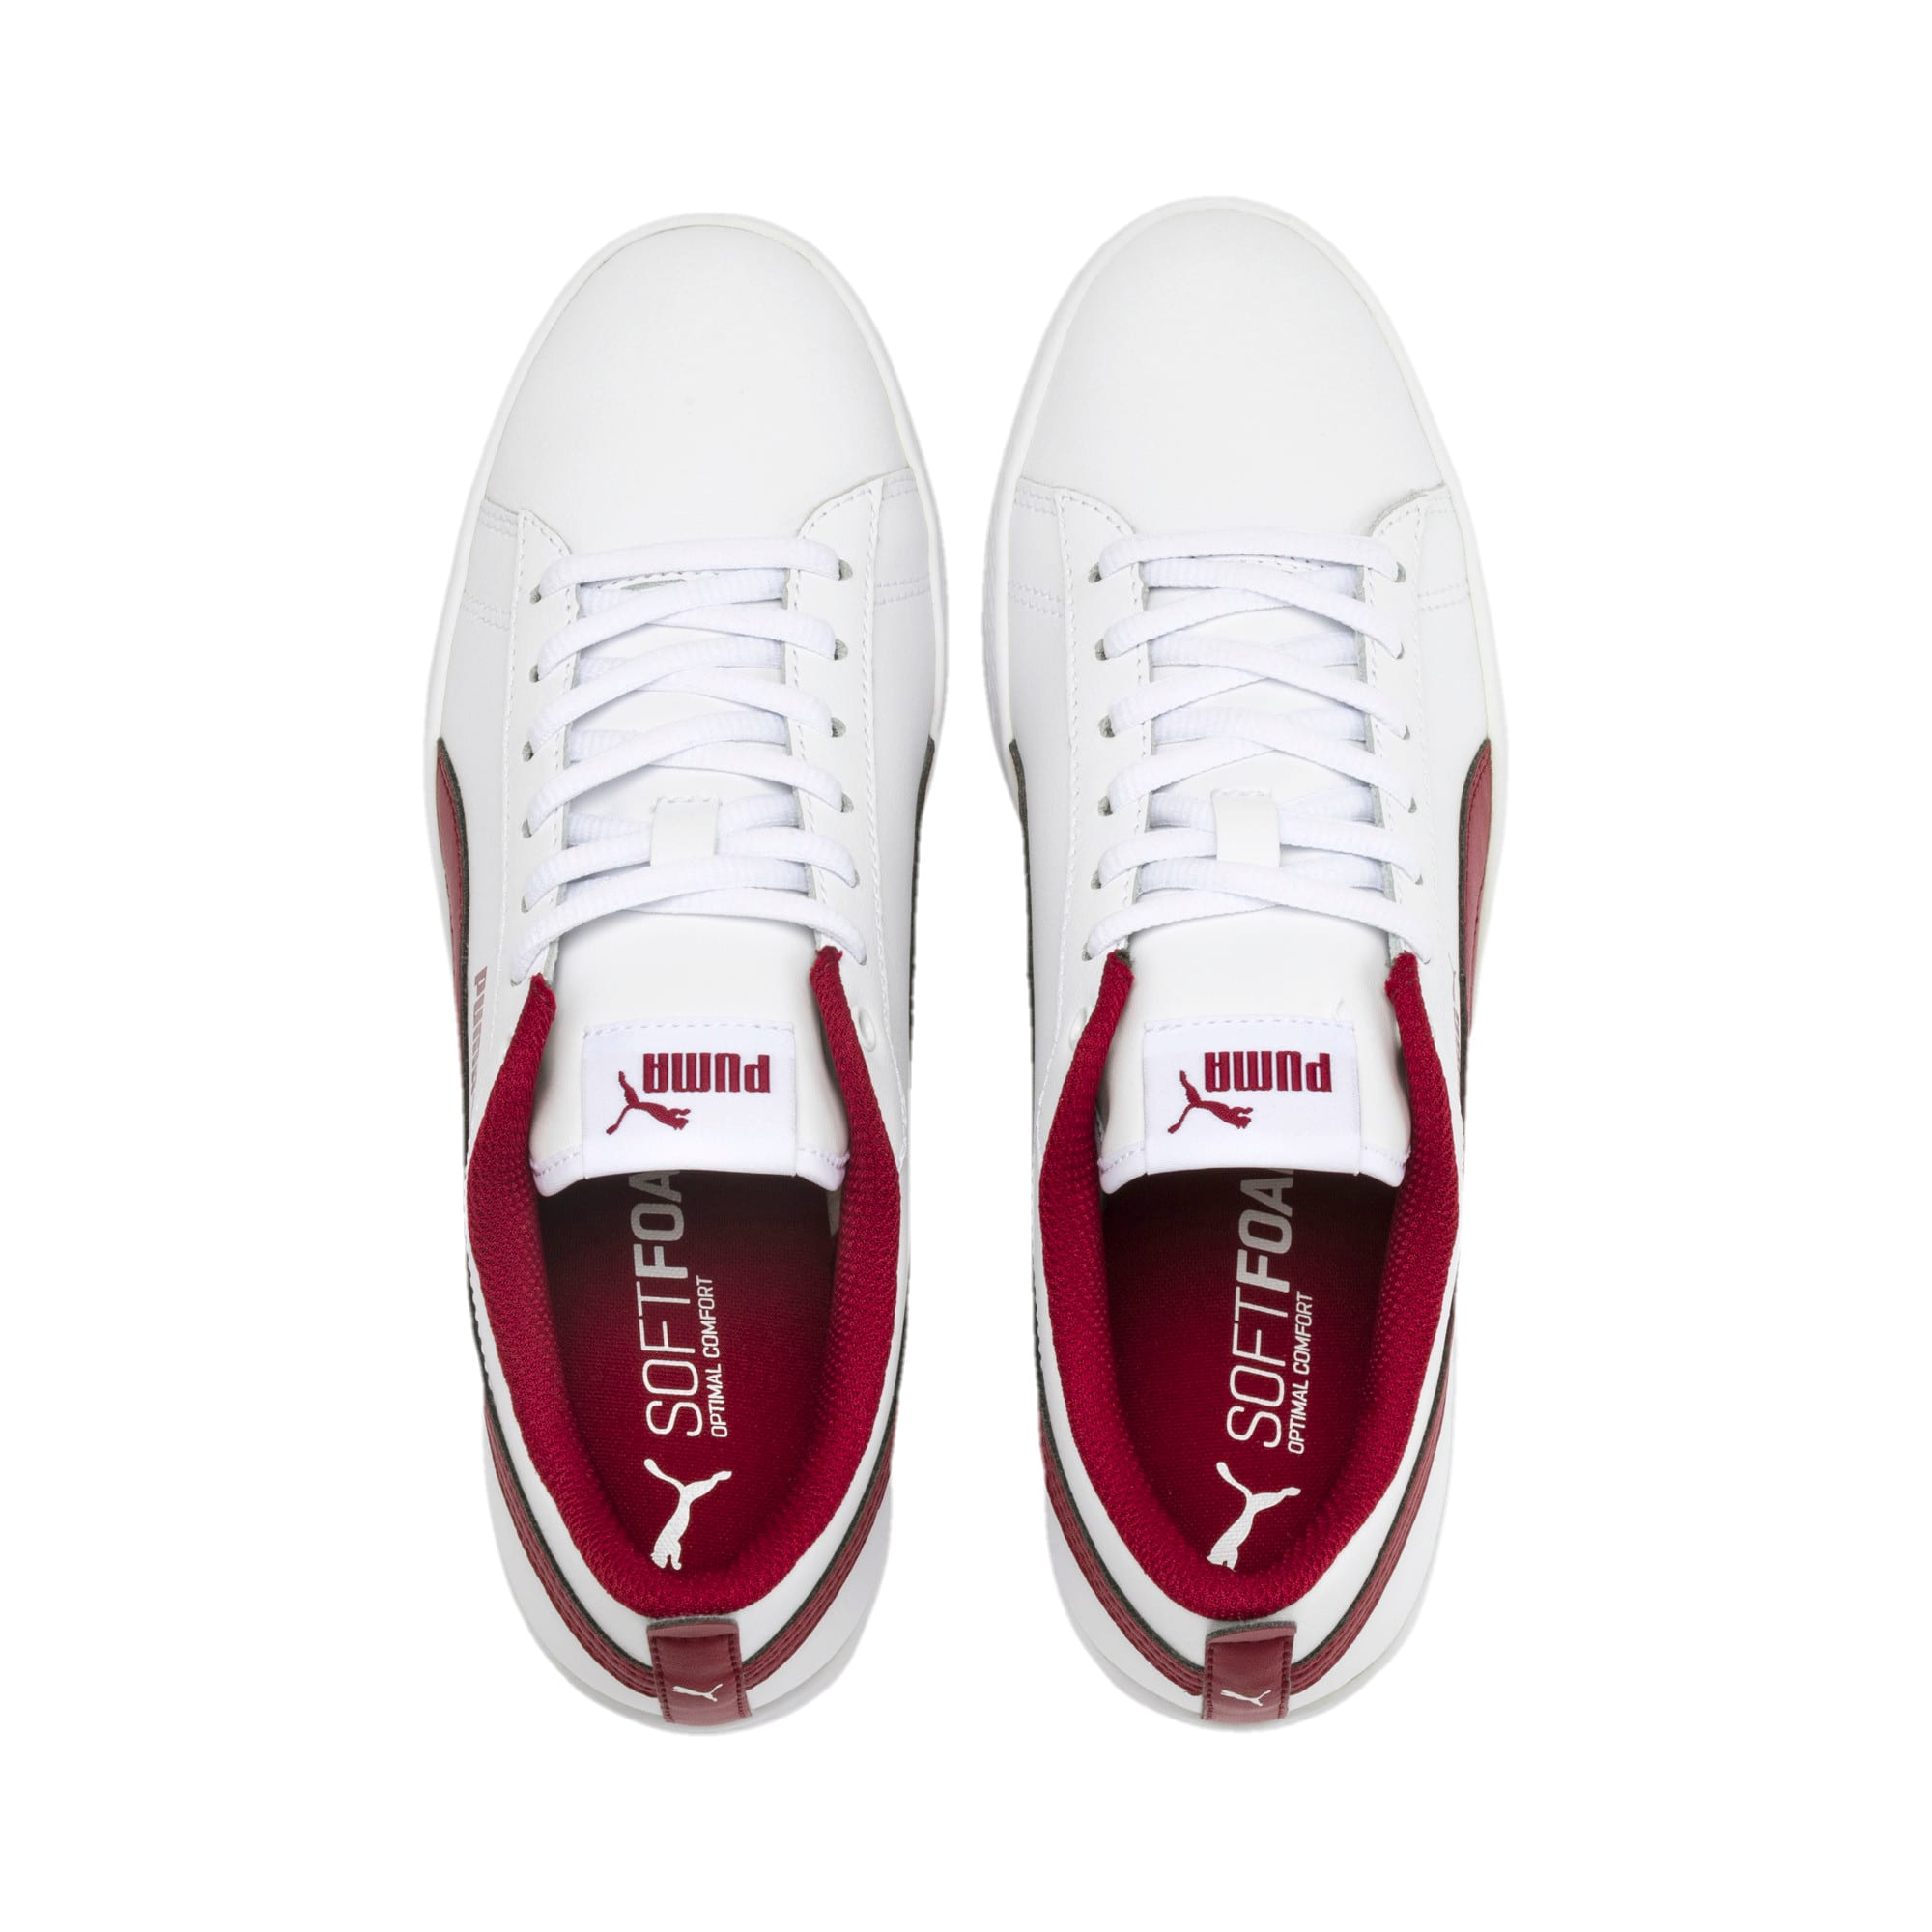 Thumbnail 7 of Basket en cuir Smash v2 pour femme, Puma White-Rhubarb, medium